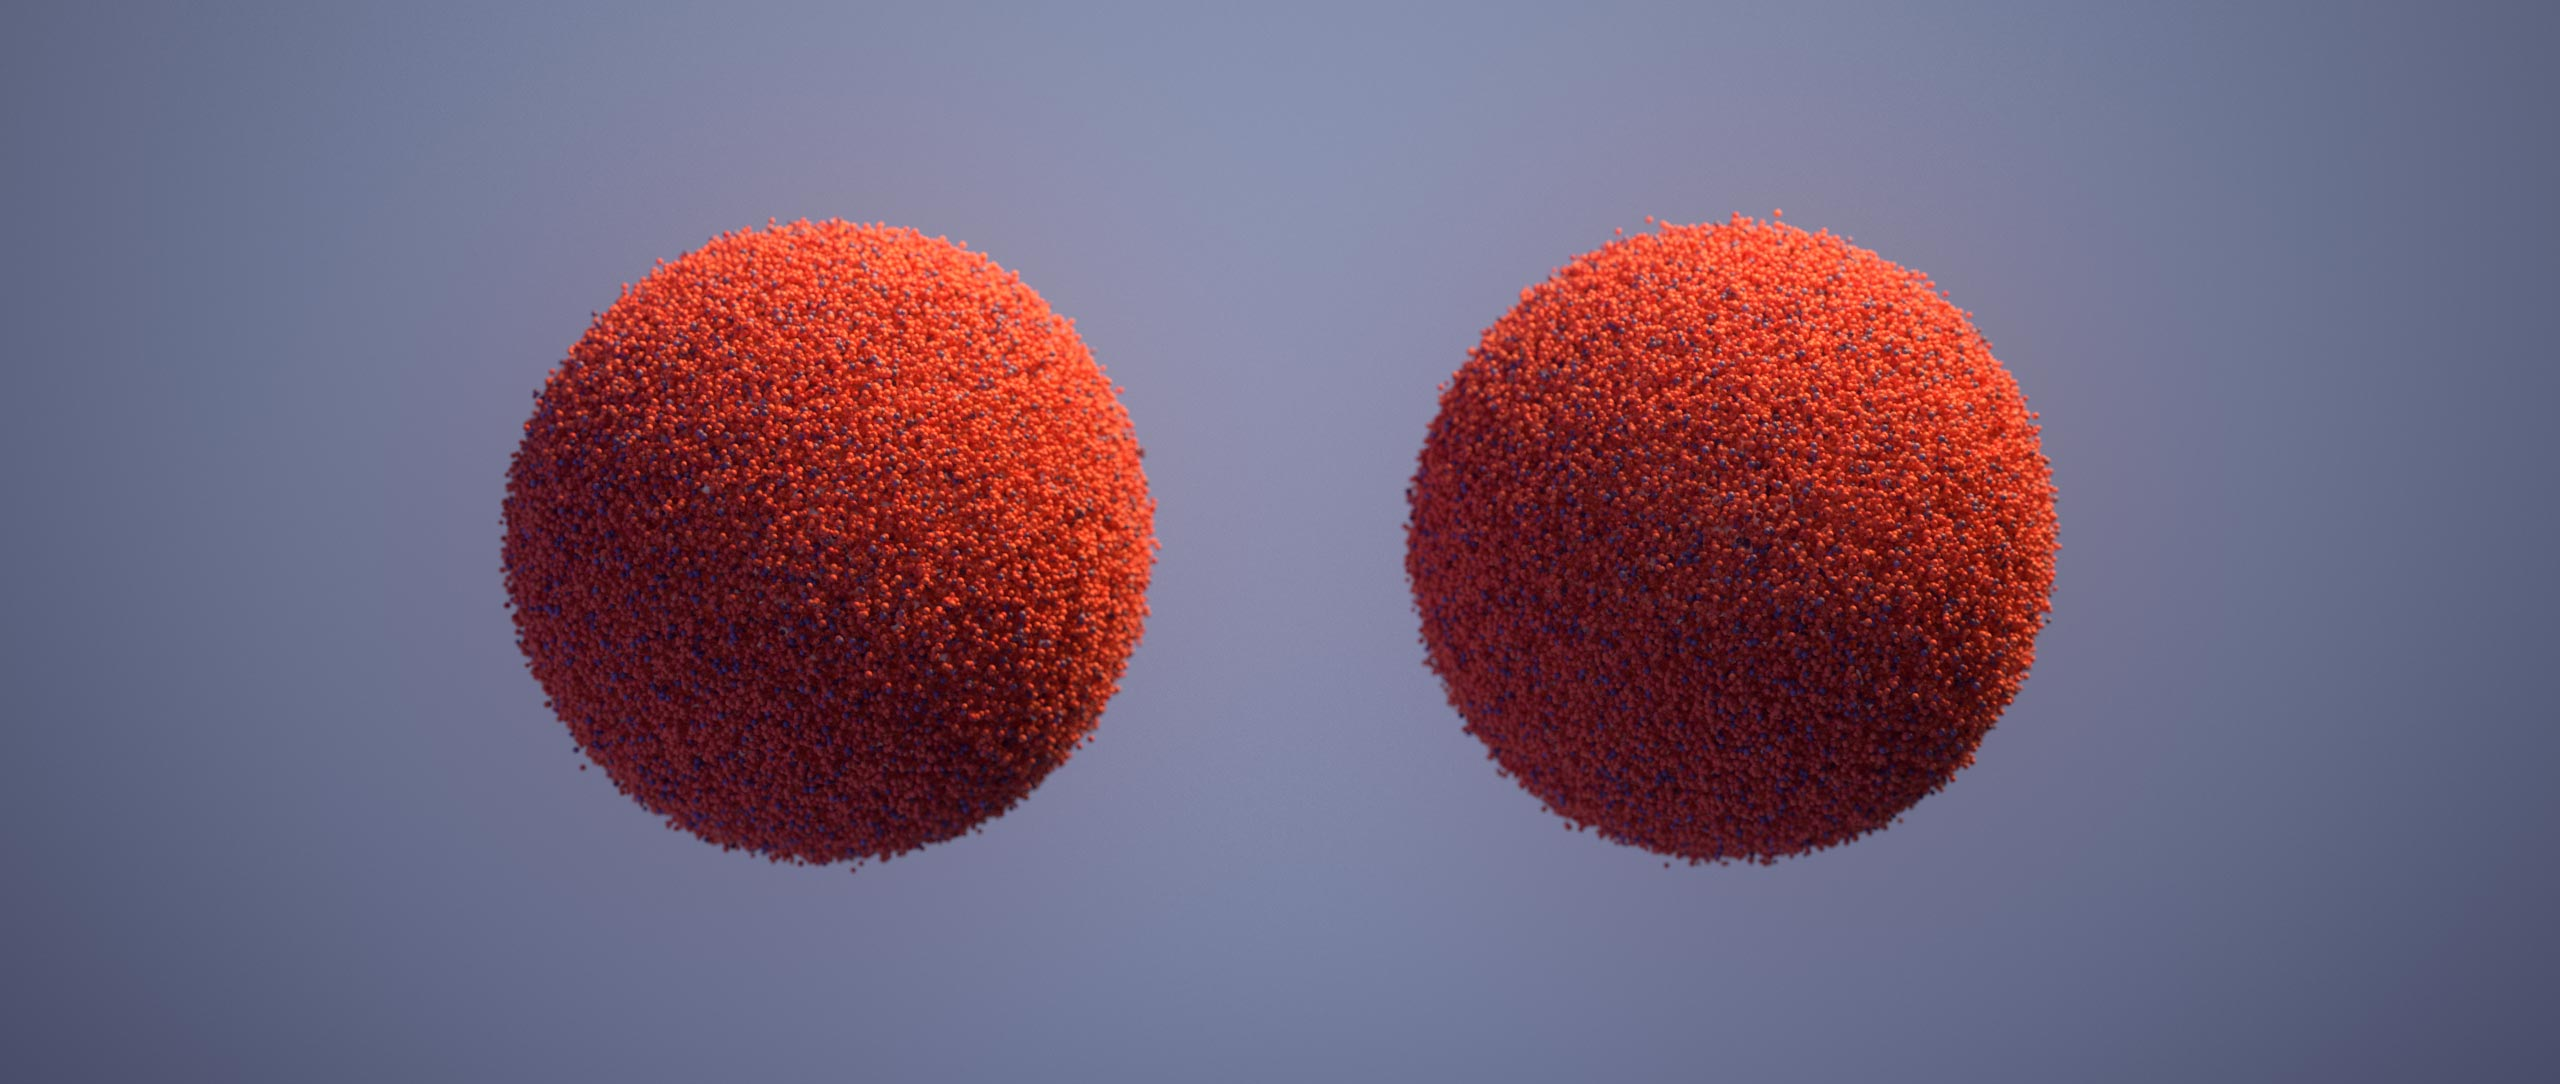 An orange ball decomposing into points and rematerializing as two balls, each the same size as the first.